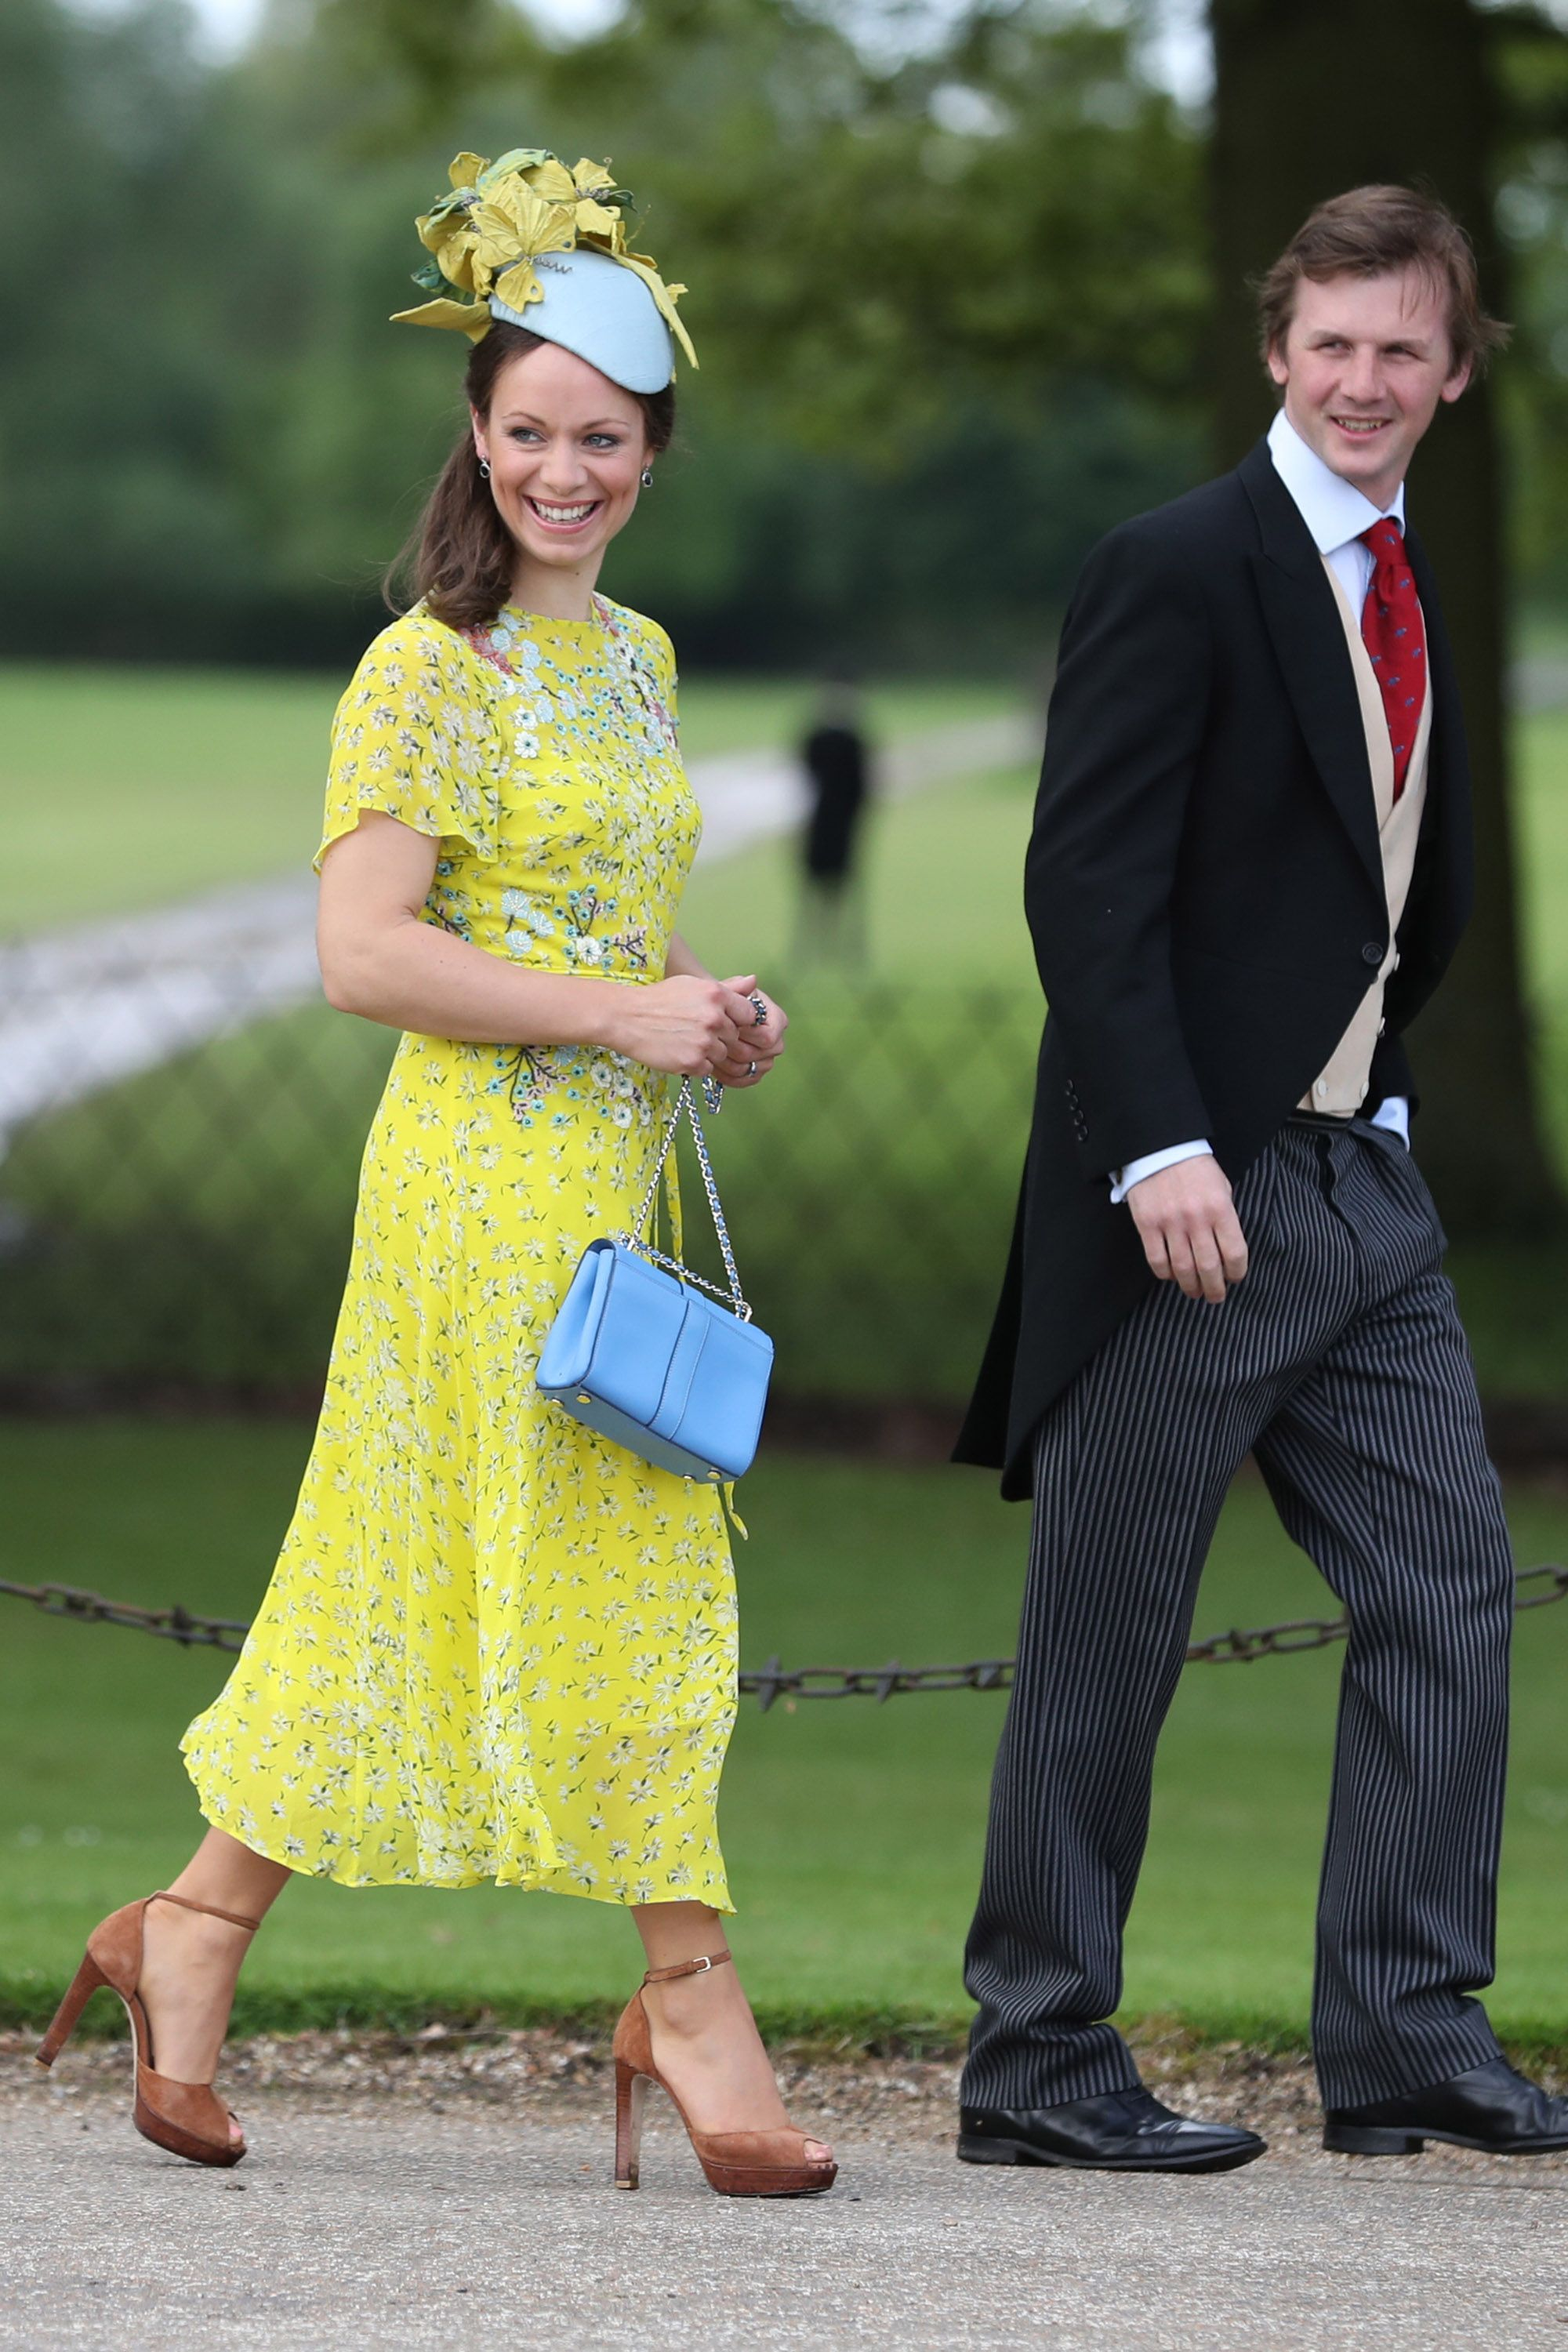 d2e9d1a1d45 Best Dressed at Pippa Middleton s Wedding - Pippa Middleton Wedding Guests